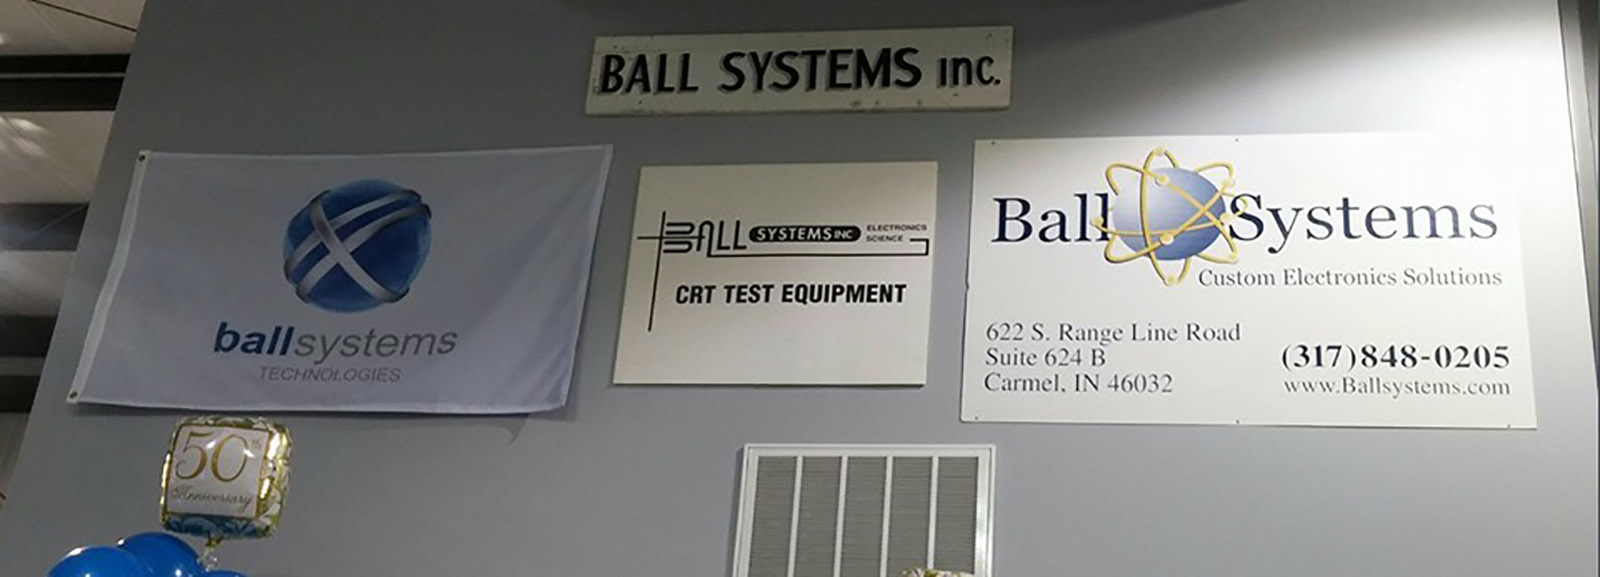 Ball Systems history